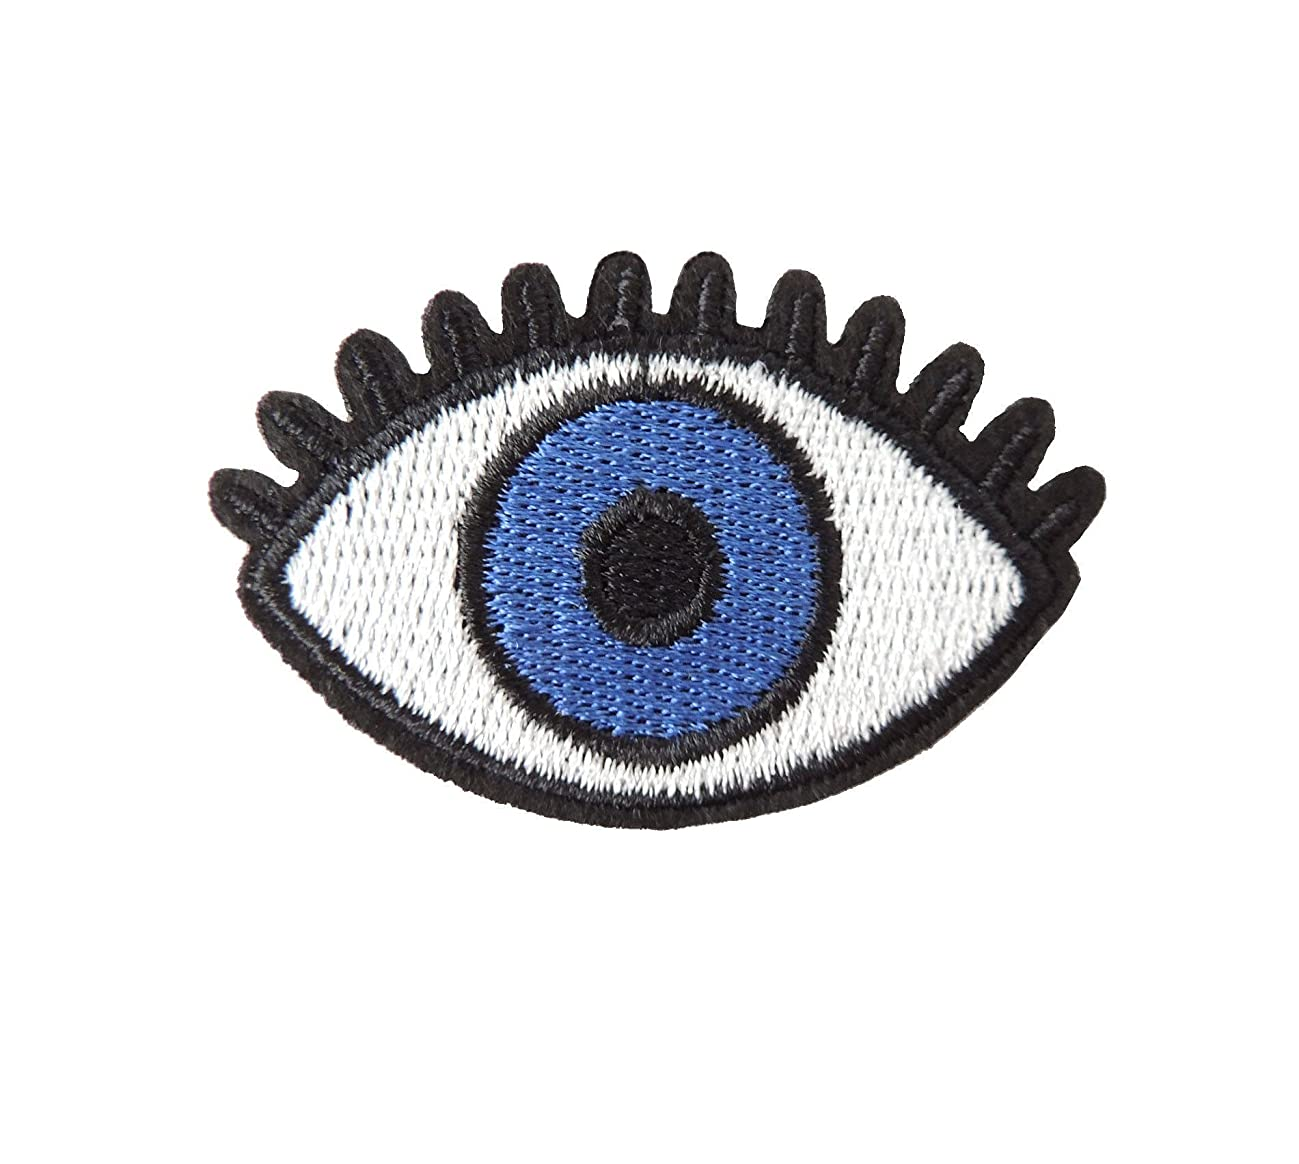 2 eye patch, blue eye, EVIL EYE, small embroidered iron on R002